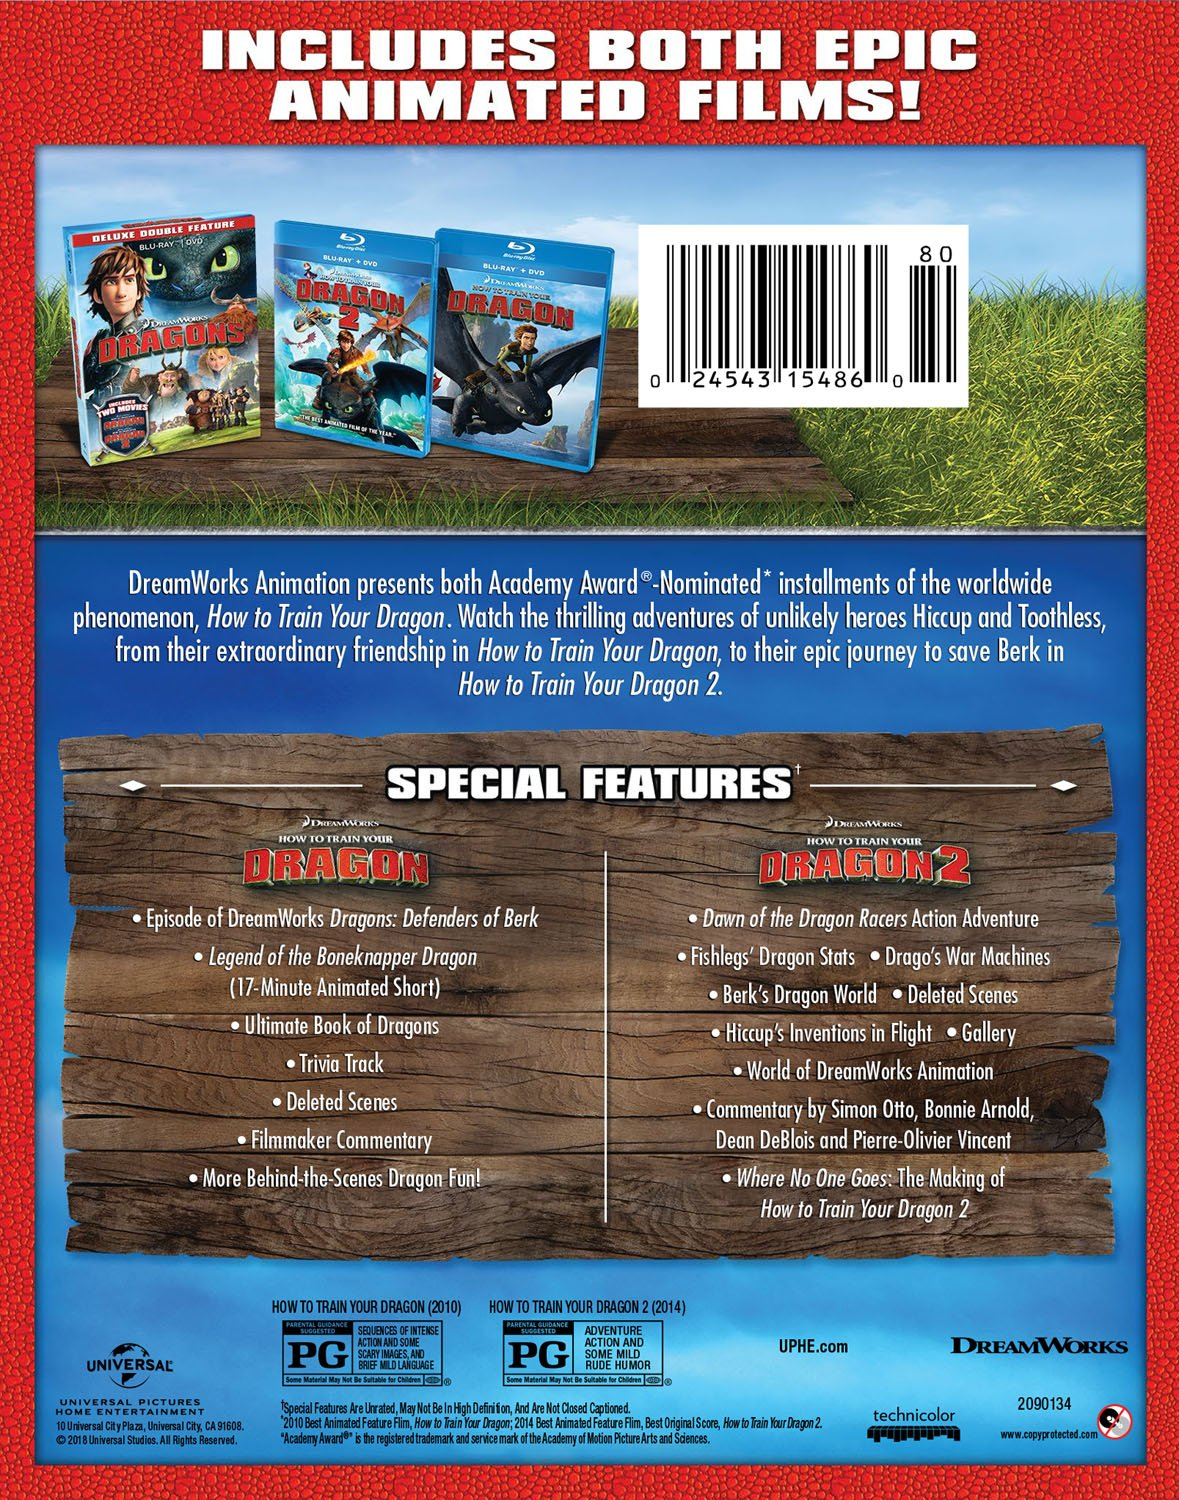 Amazon dragons deluxe double feature how to train your dragon amazon dragons deluxe double feature how to train your dragonhow to train your dragon 2 blu ray dvd jay baruchel cate blanchett gerard butler ccuart Choice Image